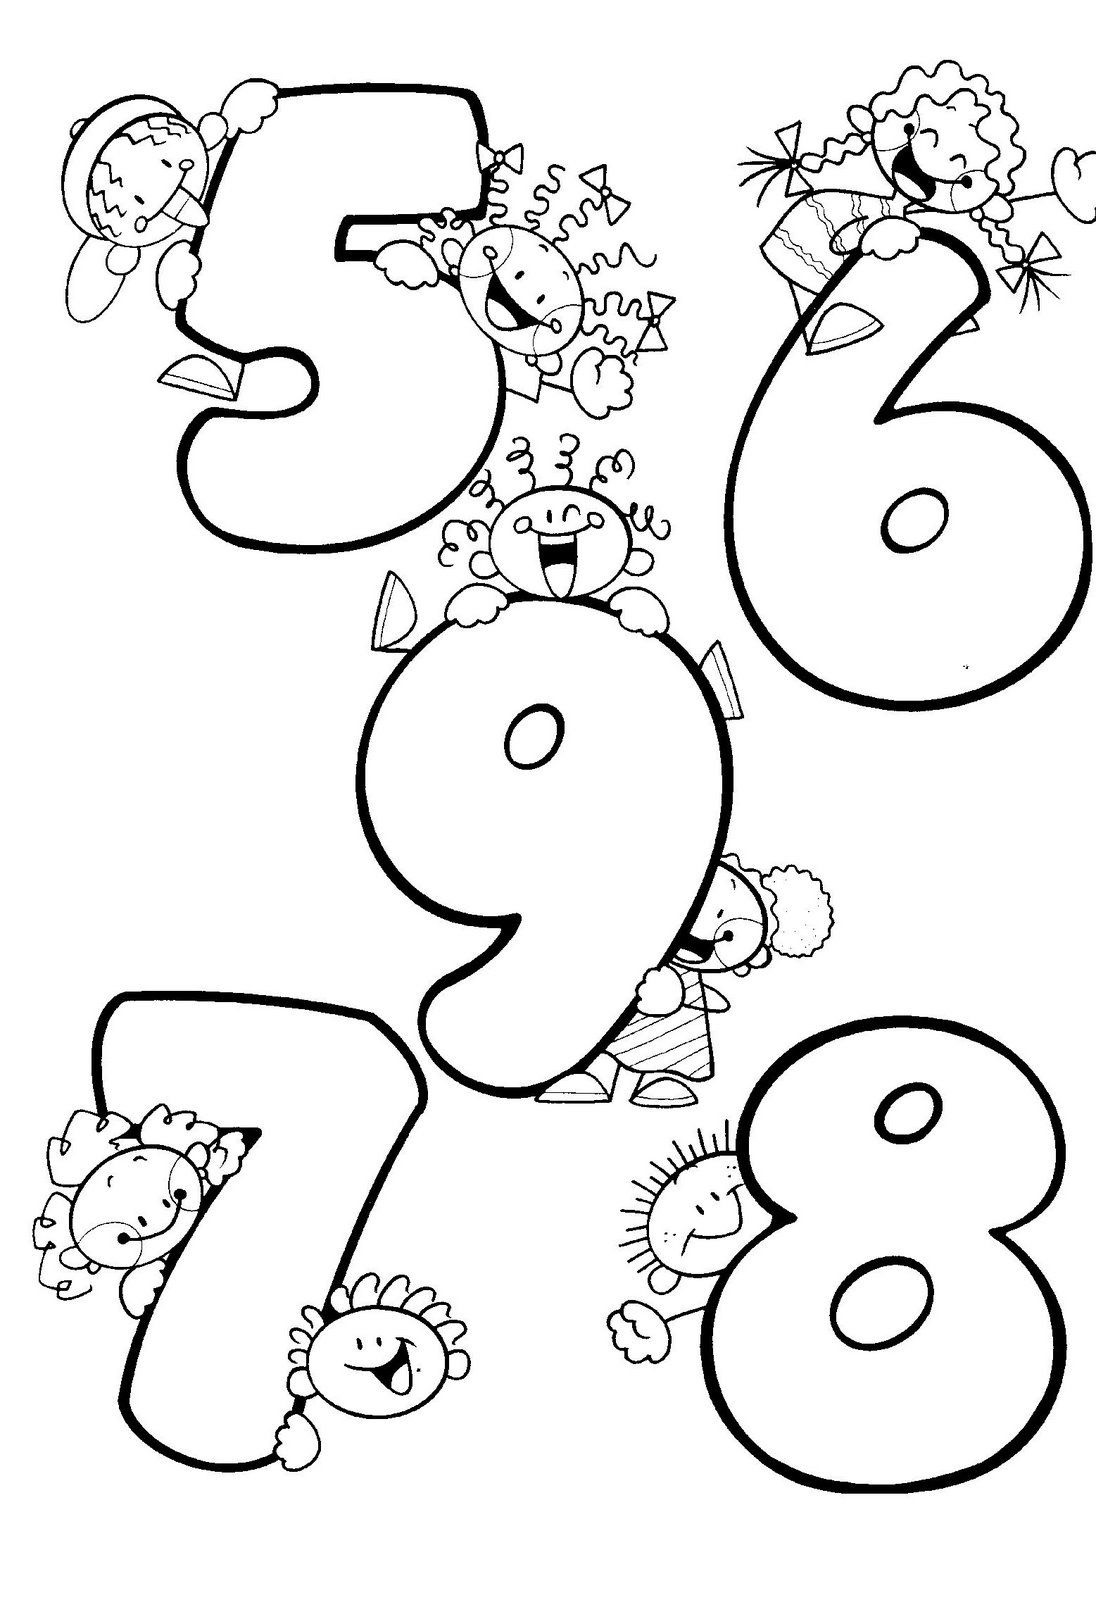 Numeros Divertidos Mclife By Me Para Colorear El Numero